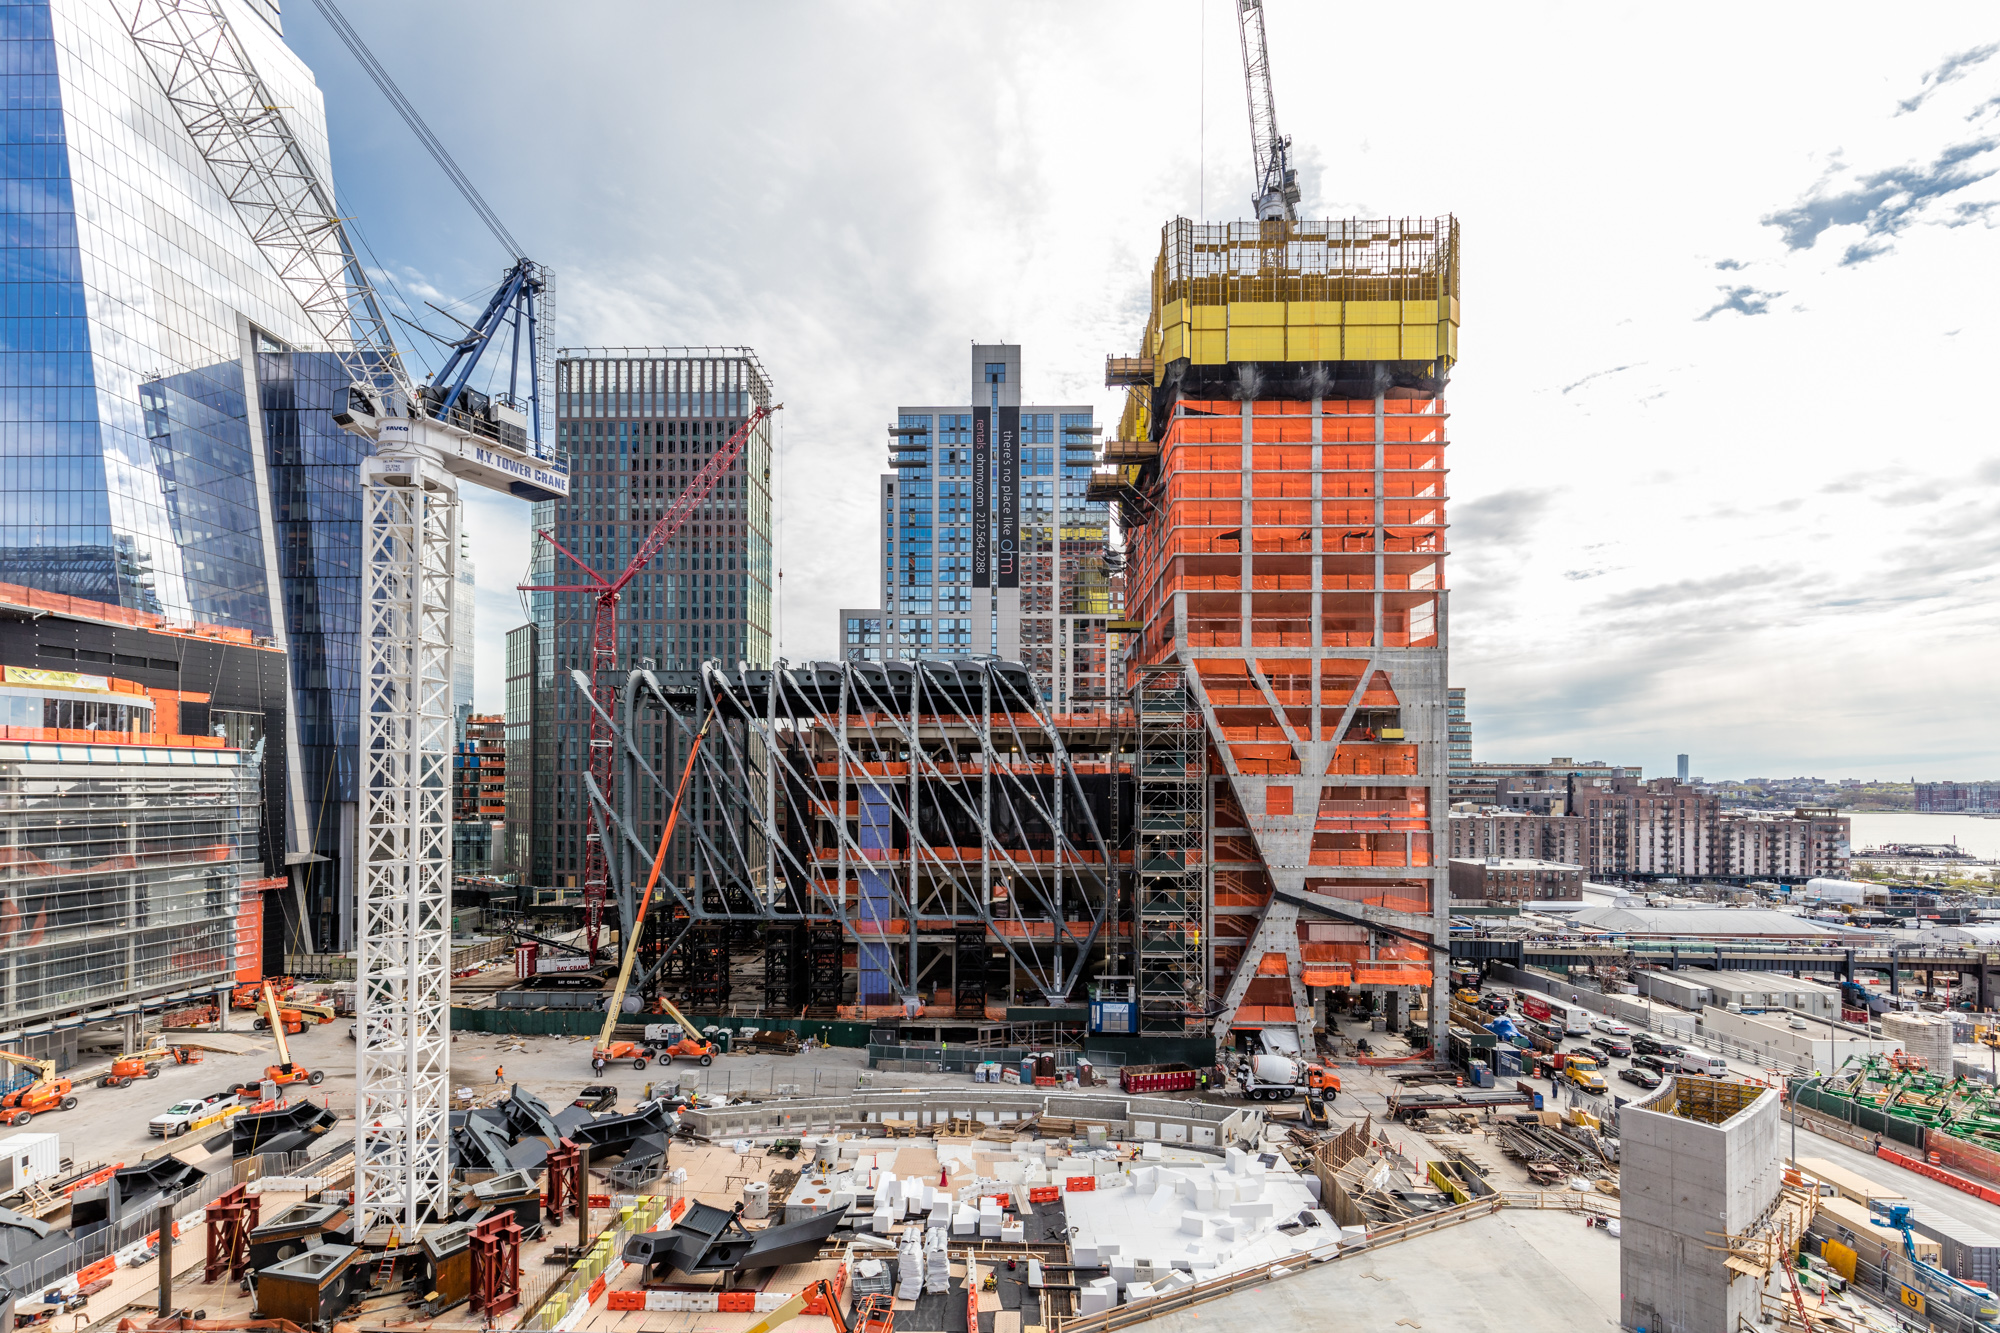 hudson yards project It forces you to make a big bet all at once that's jay cross, president of related hudson yards, referring to the massive project underway to transform the the 28.